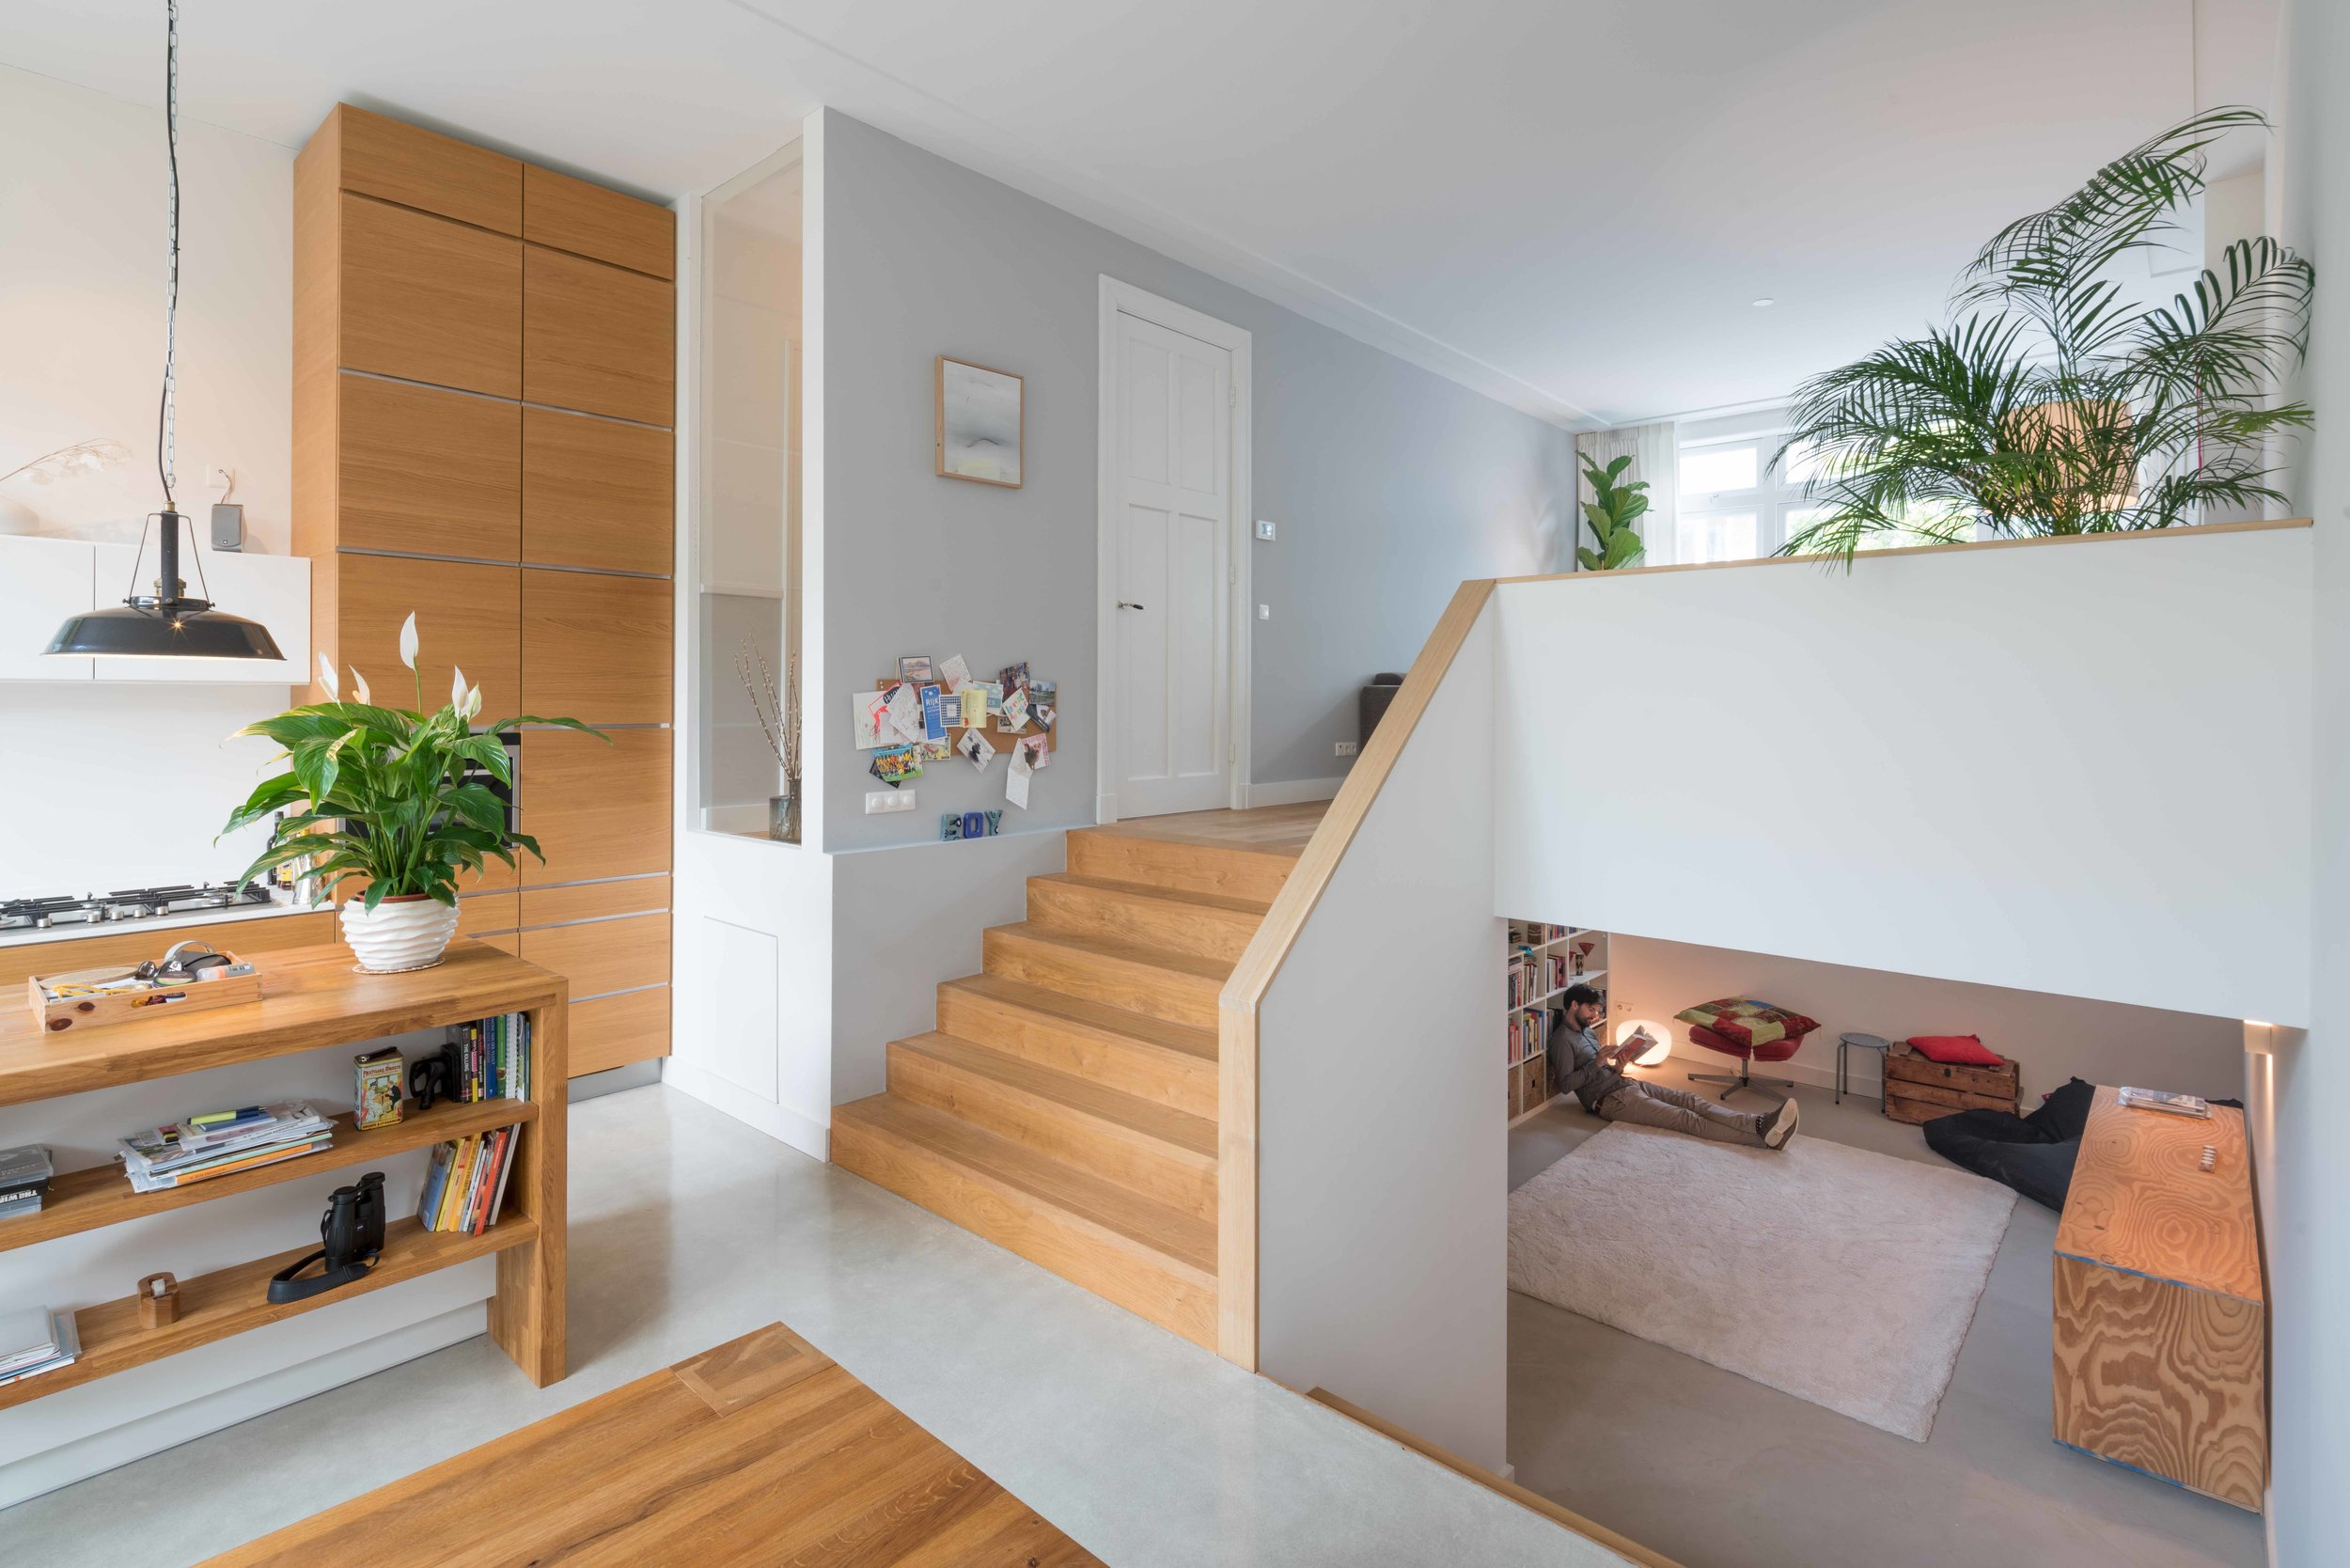 split level with wide stairs connecting living, kitchen and dining area with the basement